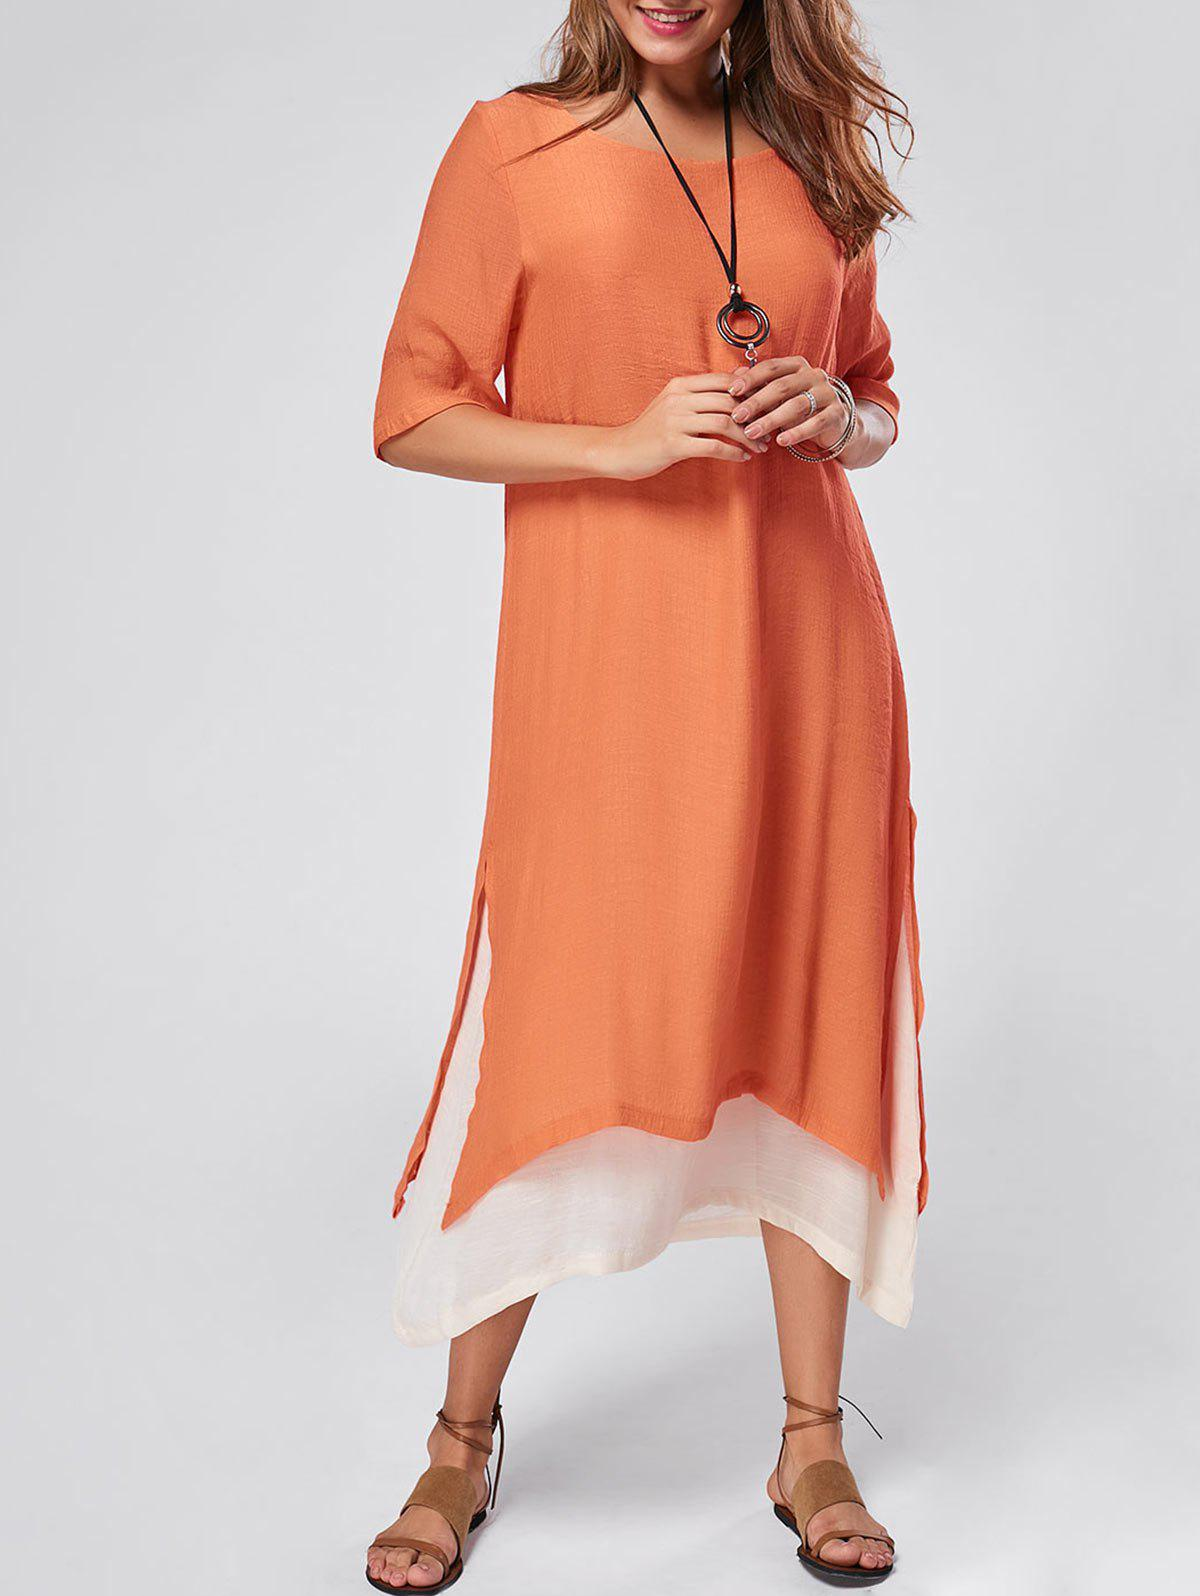 Robe de lin Maxi haute tenue asymétrique - Orange XL